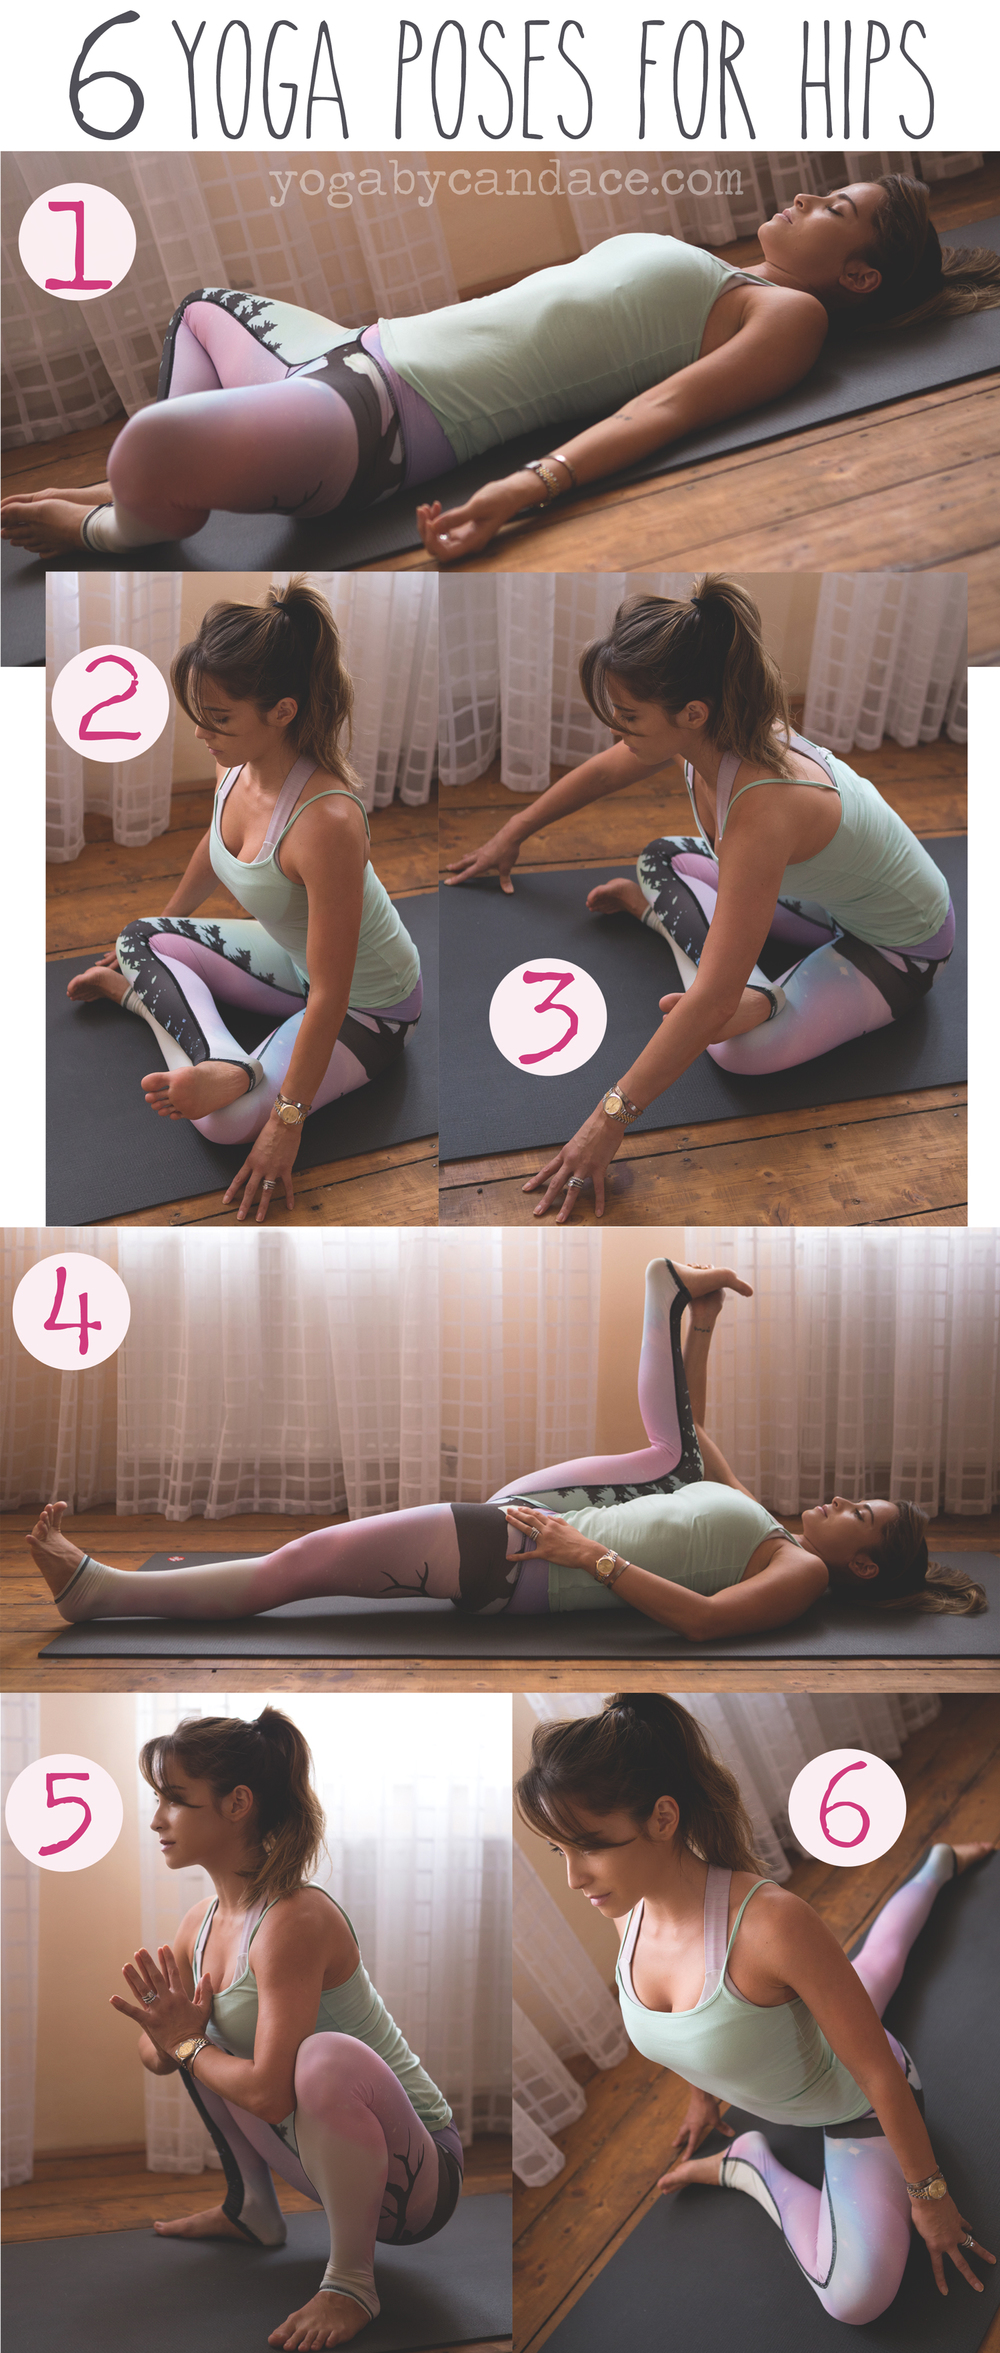 Pin now, practice later! 6 yoga poses for hips!  Wearing:  Teeki northern lights pants ,  tank . Using:  Manduka mat